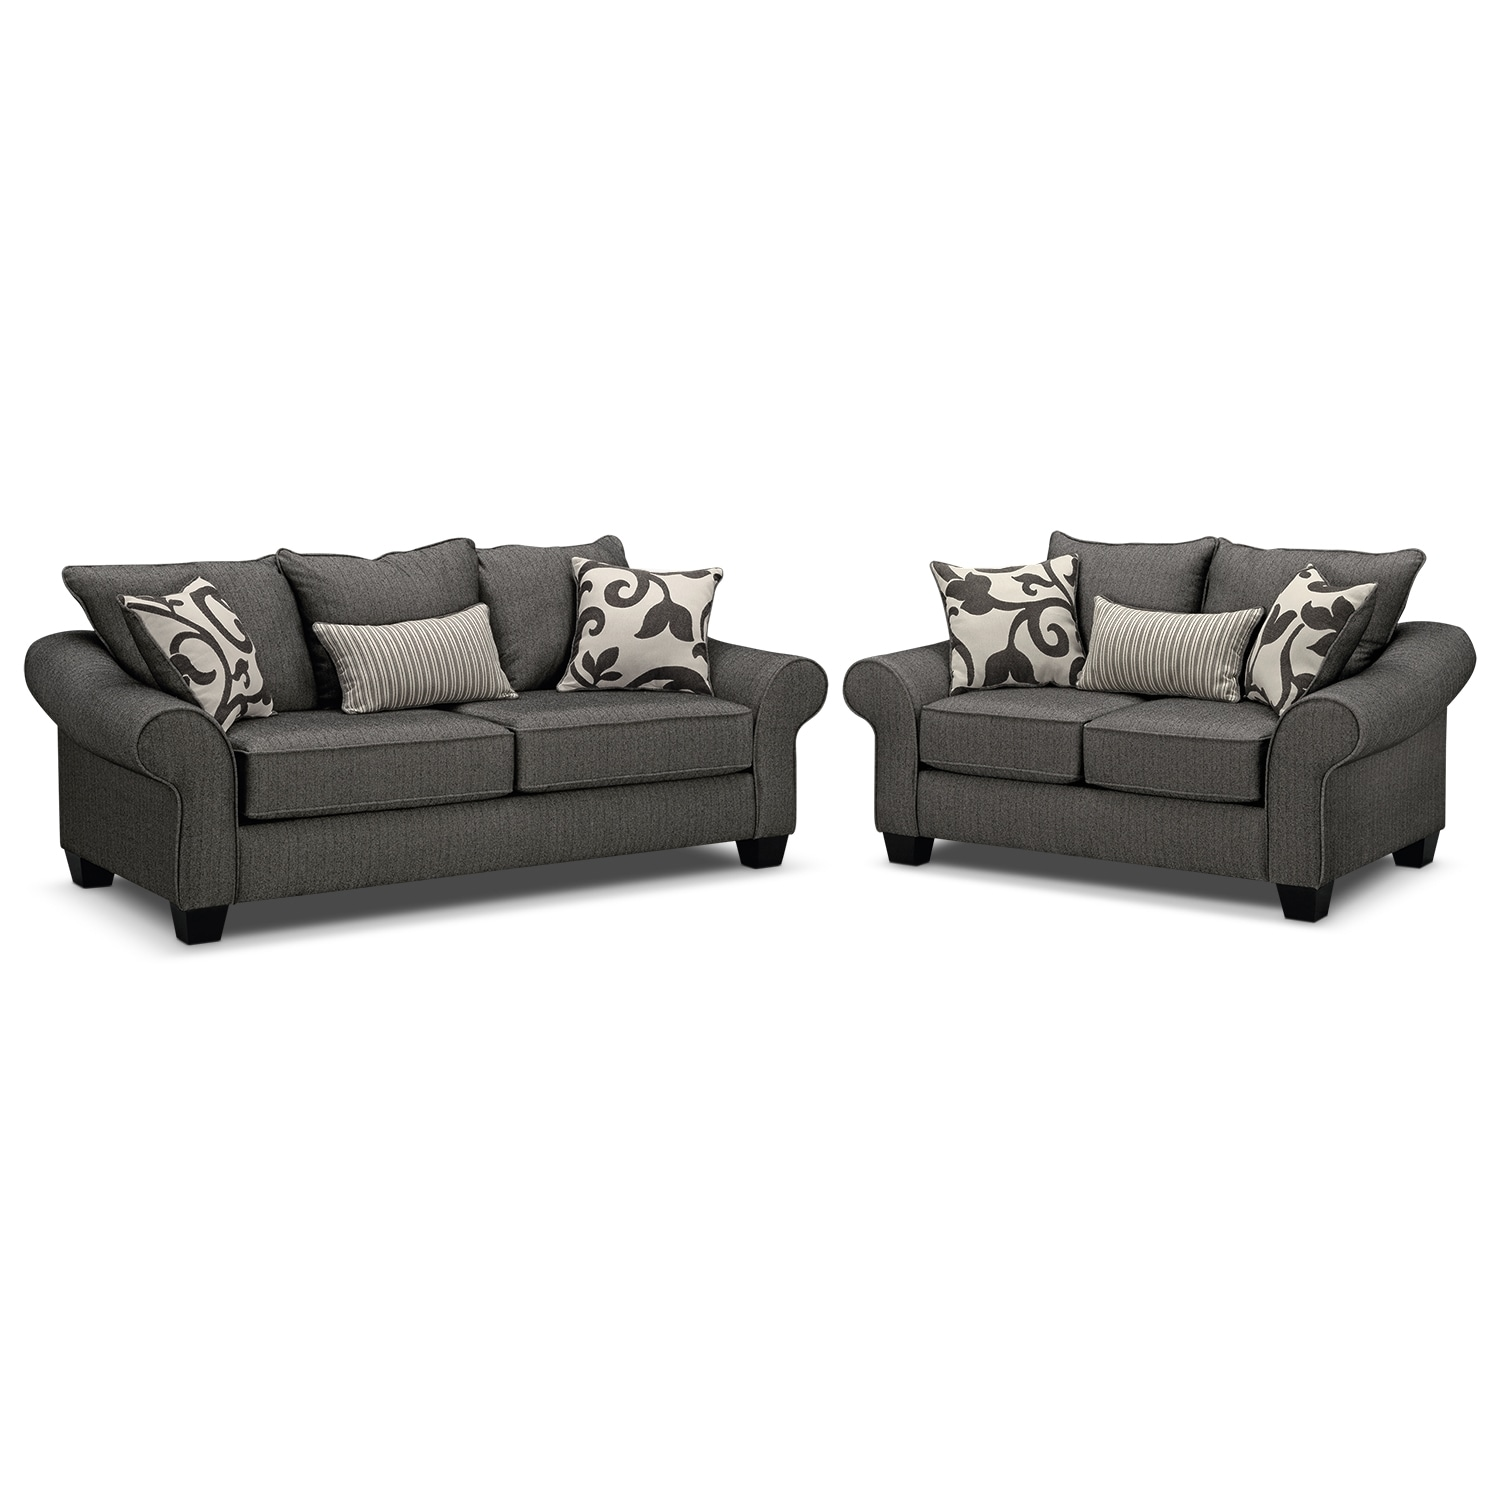 Living Room Furniture - Colette Gray 2 Pc. Sleeper Living Room with Memory Foam Mattress